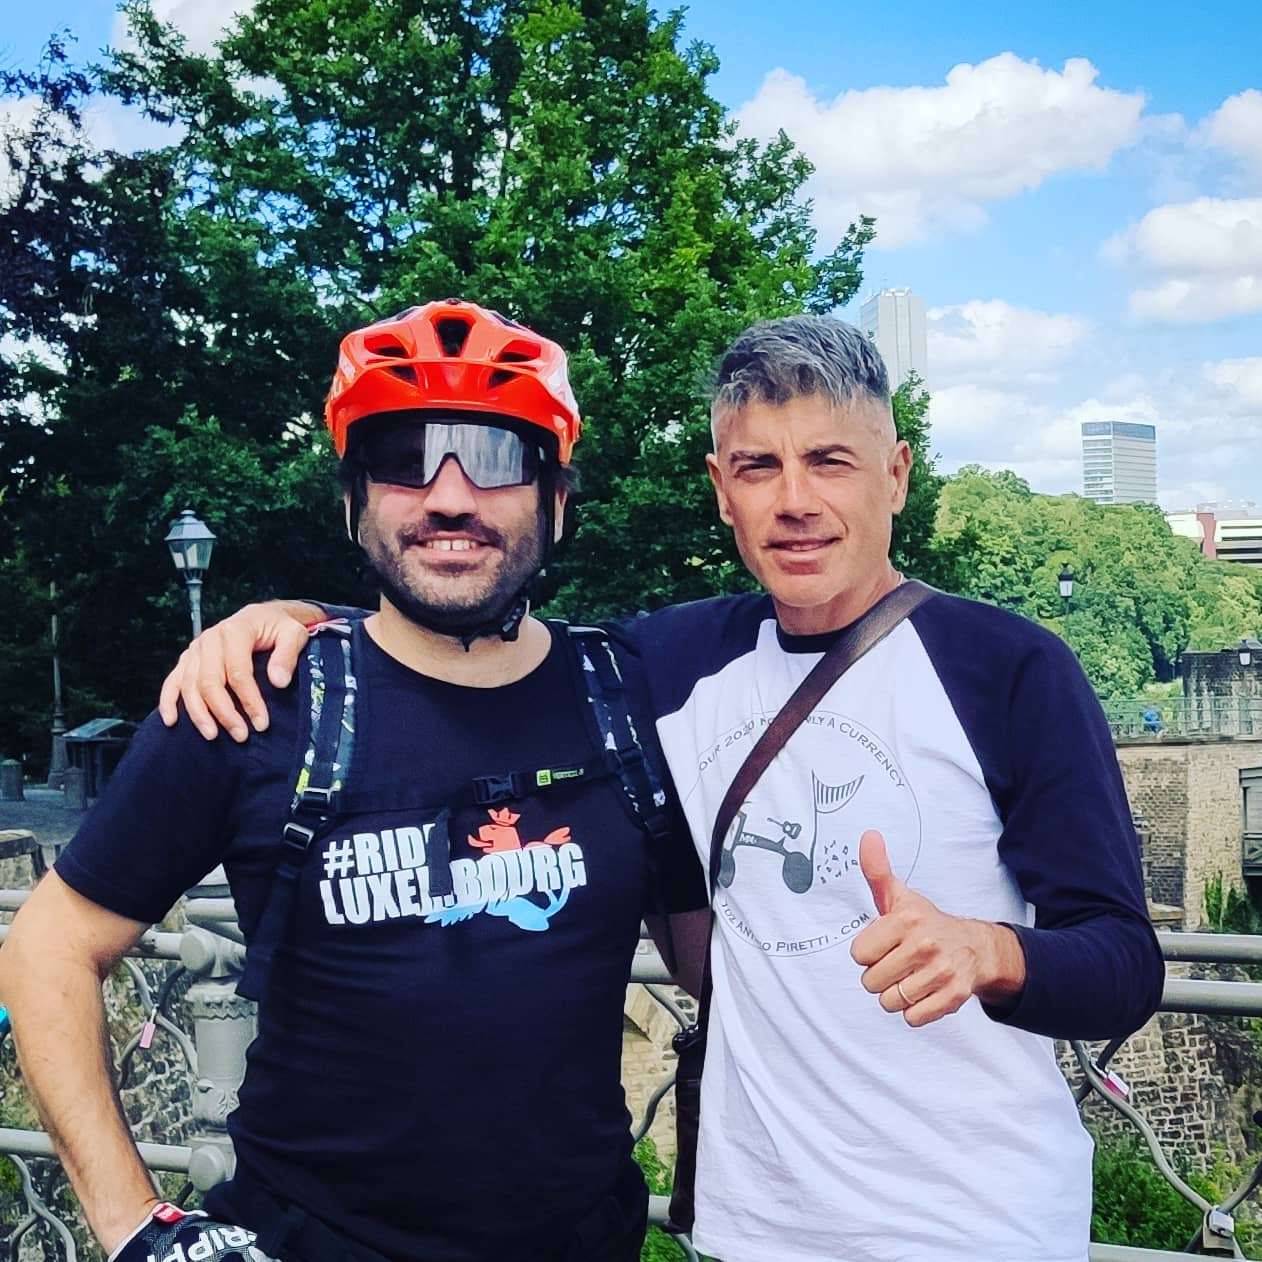 Luxemburg - Not Only A Currency - with Gregory - biketours.lu